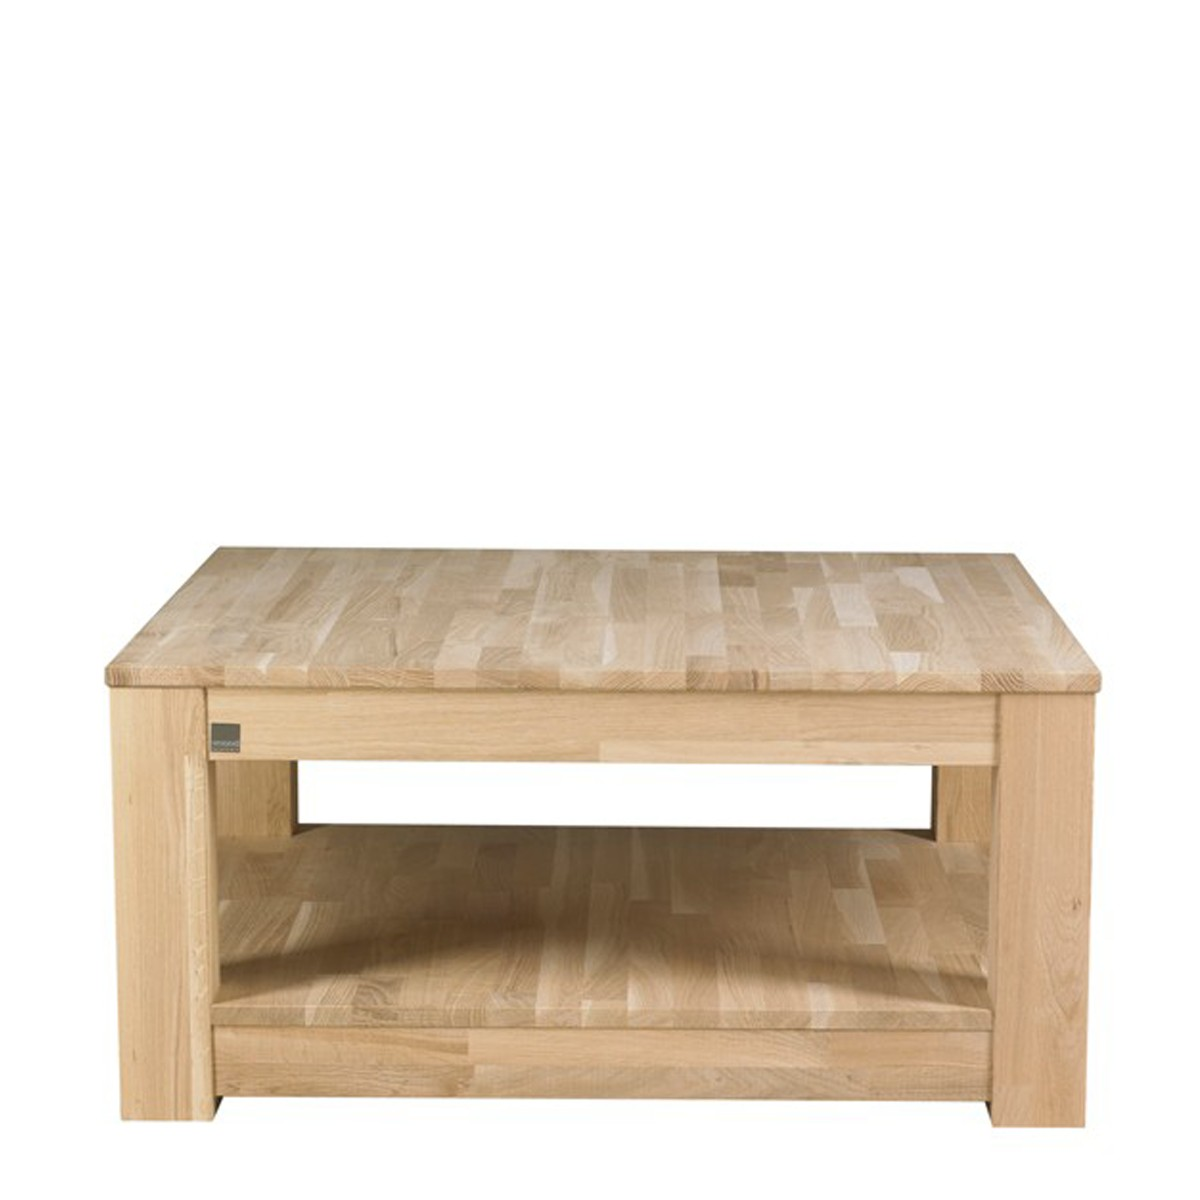 49 tables basses designs - Table basse carree en bois ...